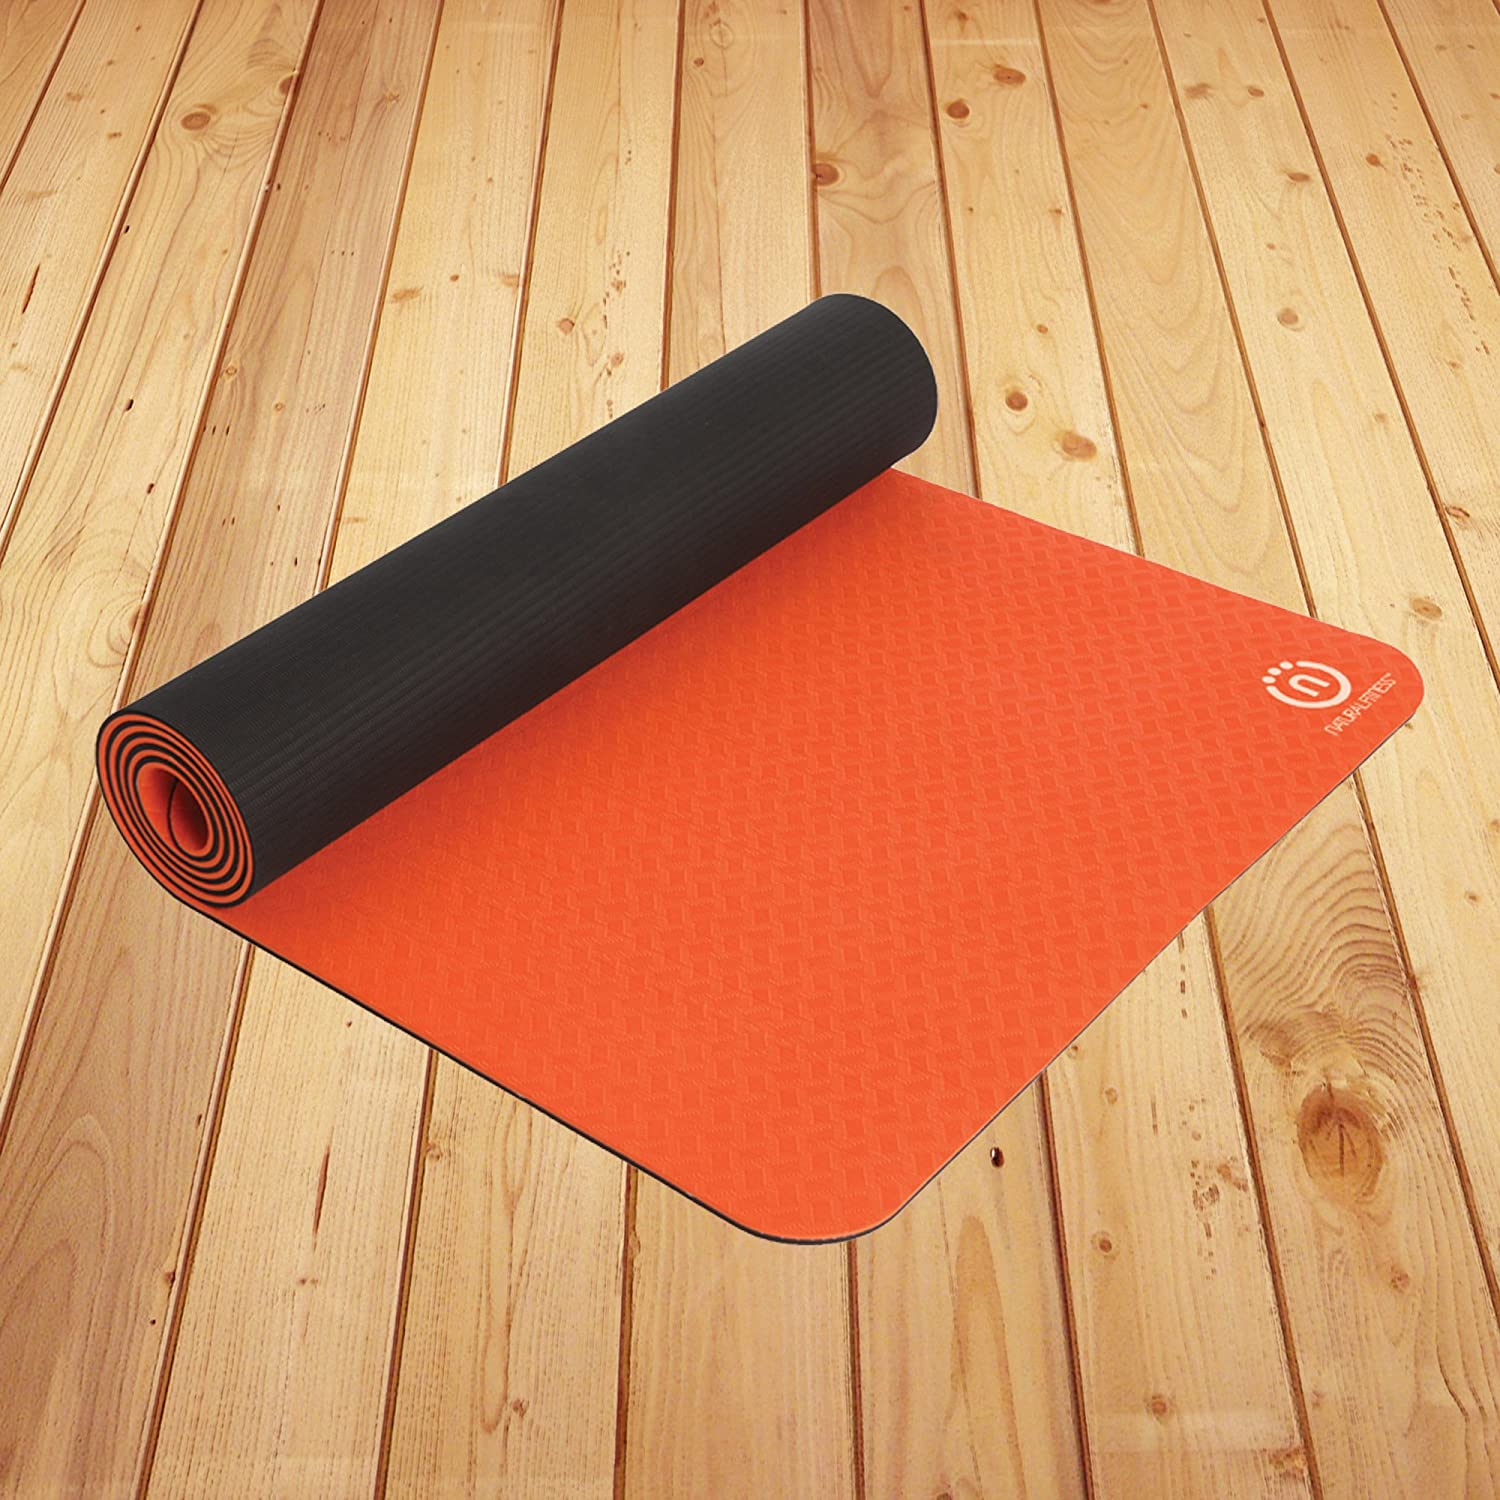 Amazon.com: Natural Fitness Powerhouse Pro Estera de Yoga ...